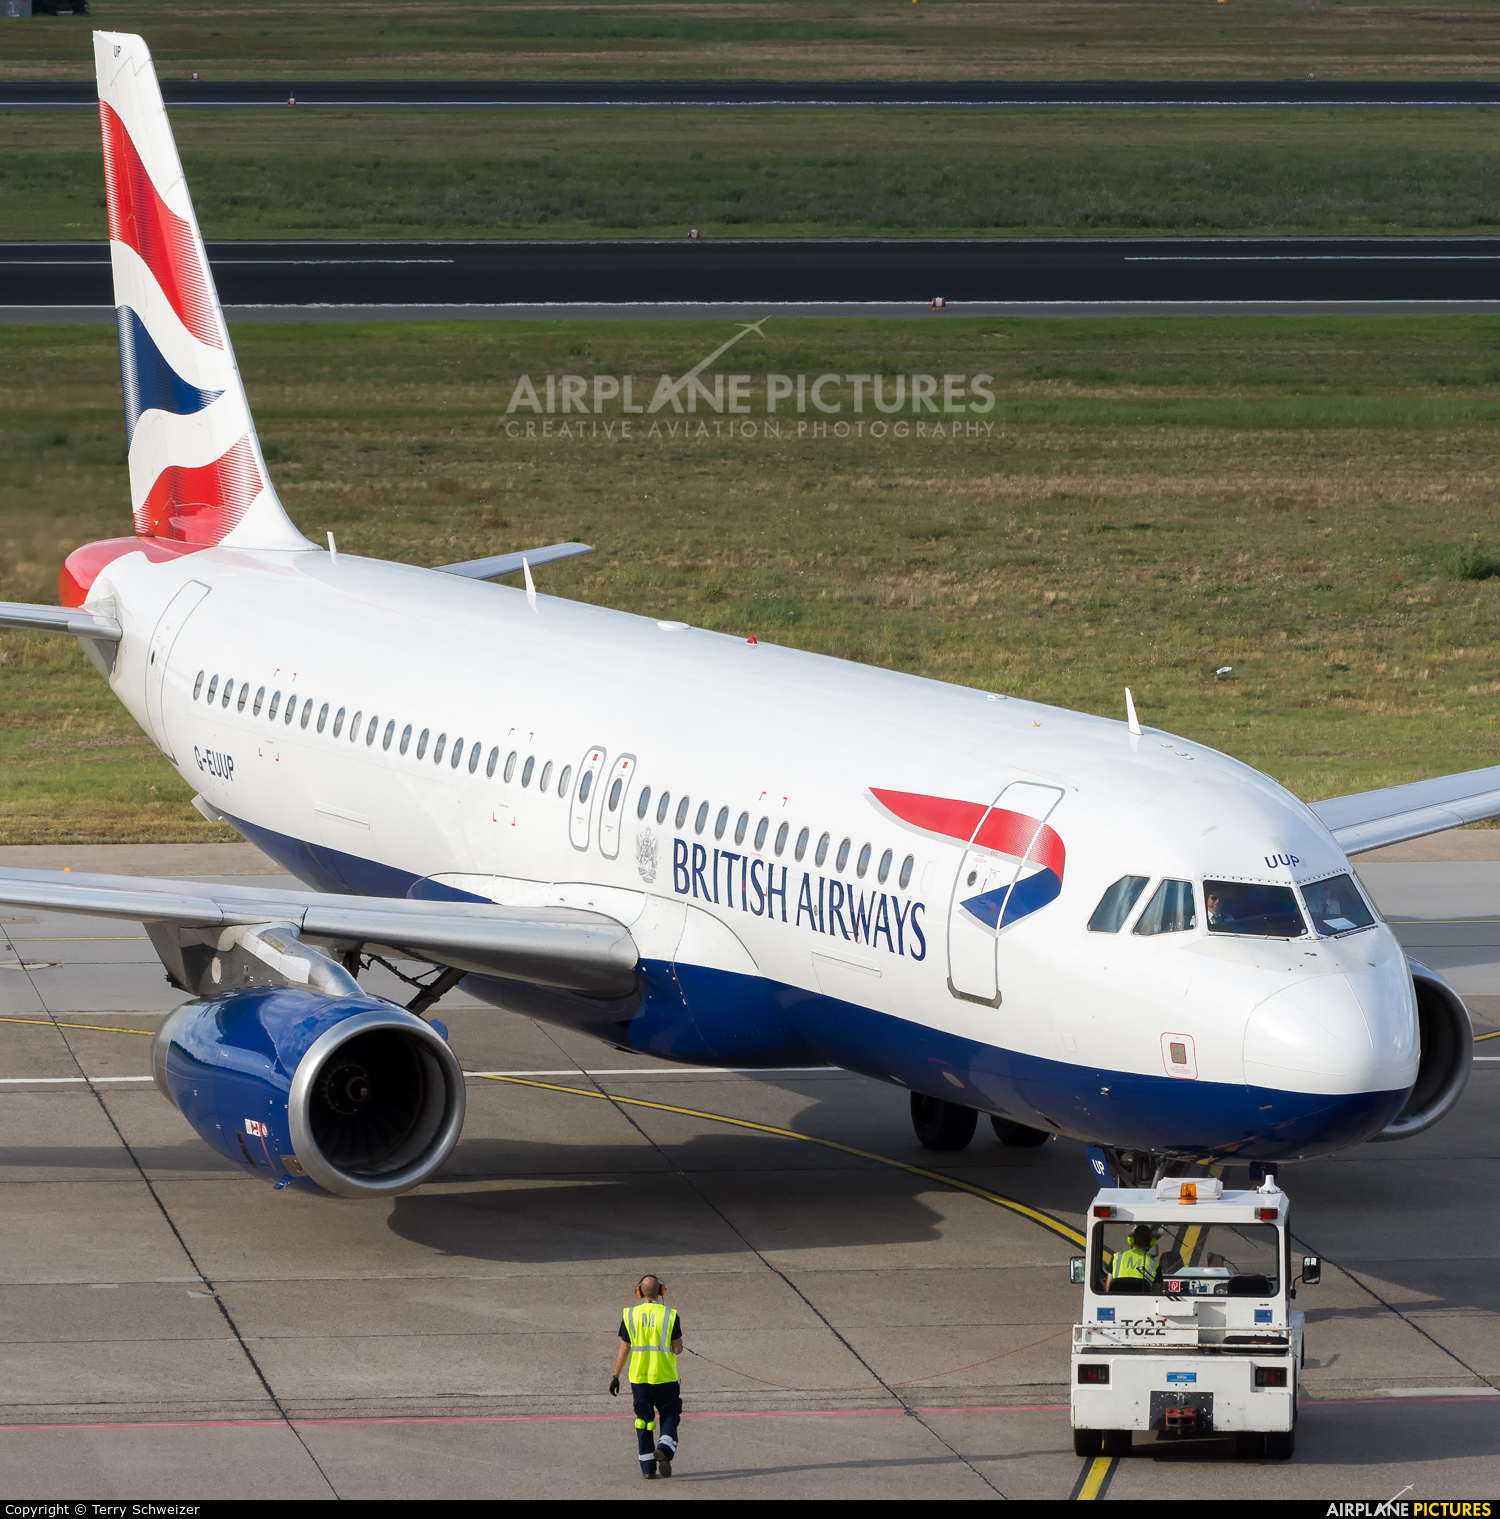 British Airways G-EUUP aircraft at Berlin - Tegel